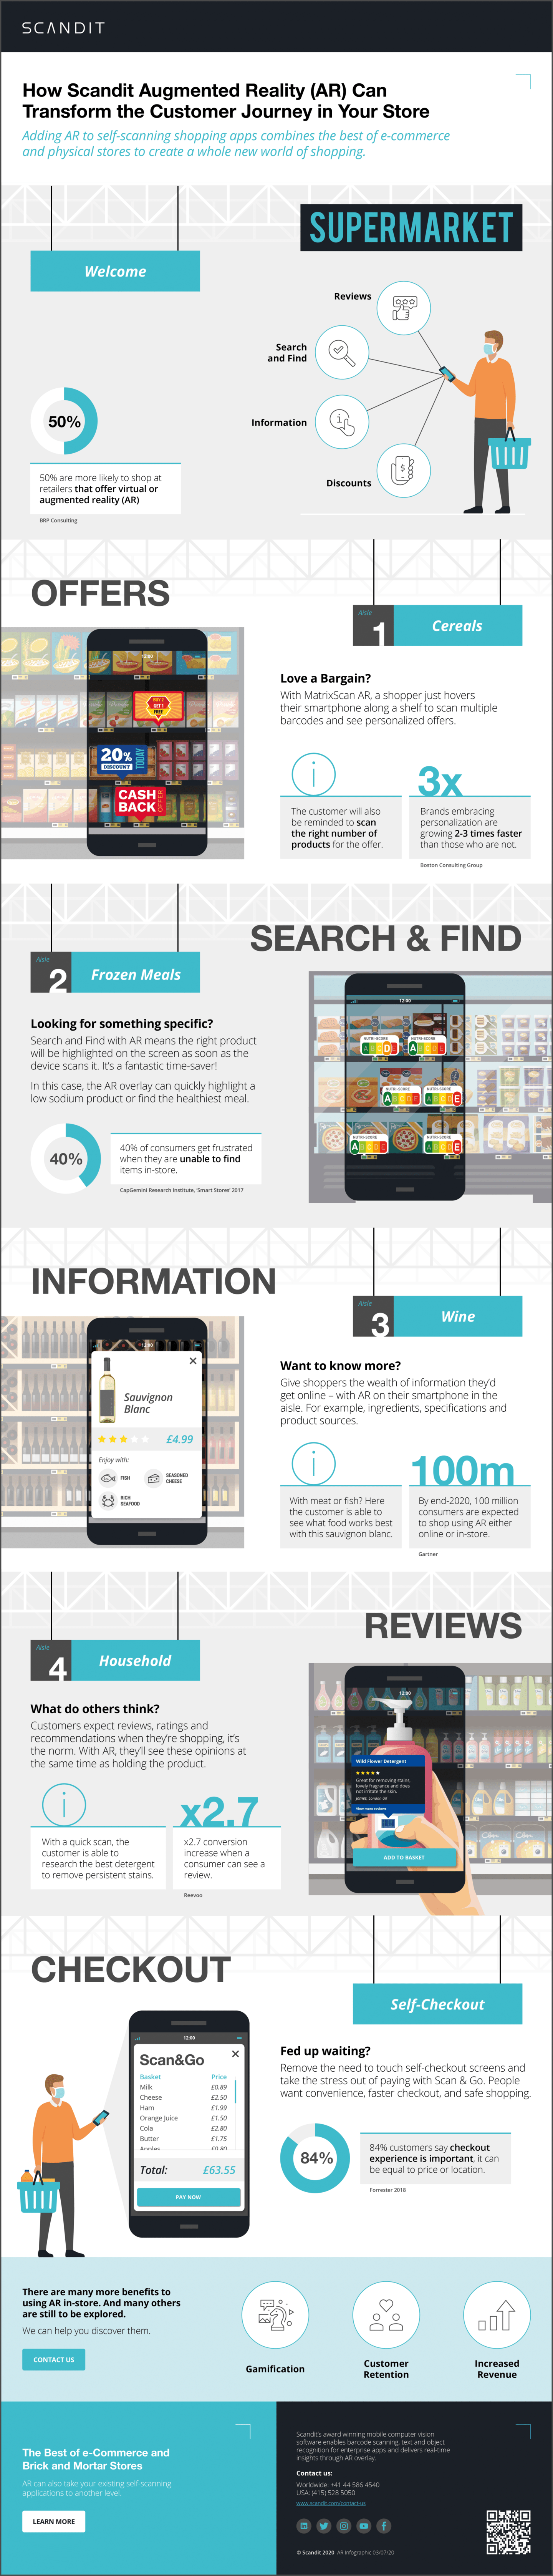 How Augmented Reality Can Transform a Store Journey [Infographic]